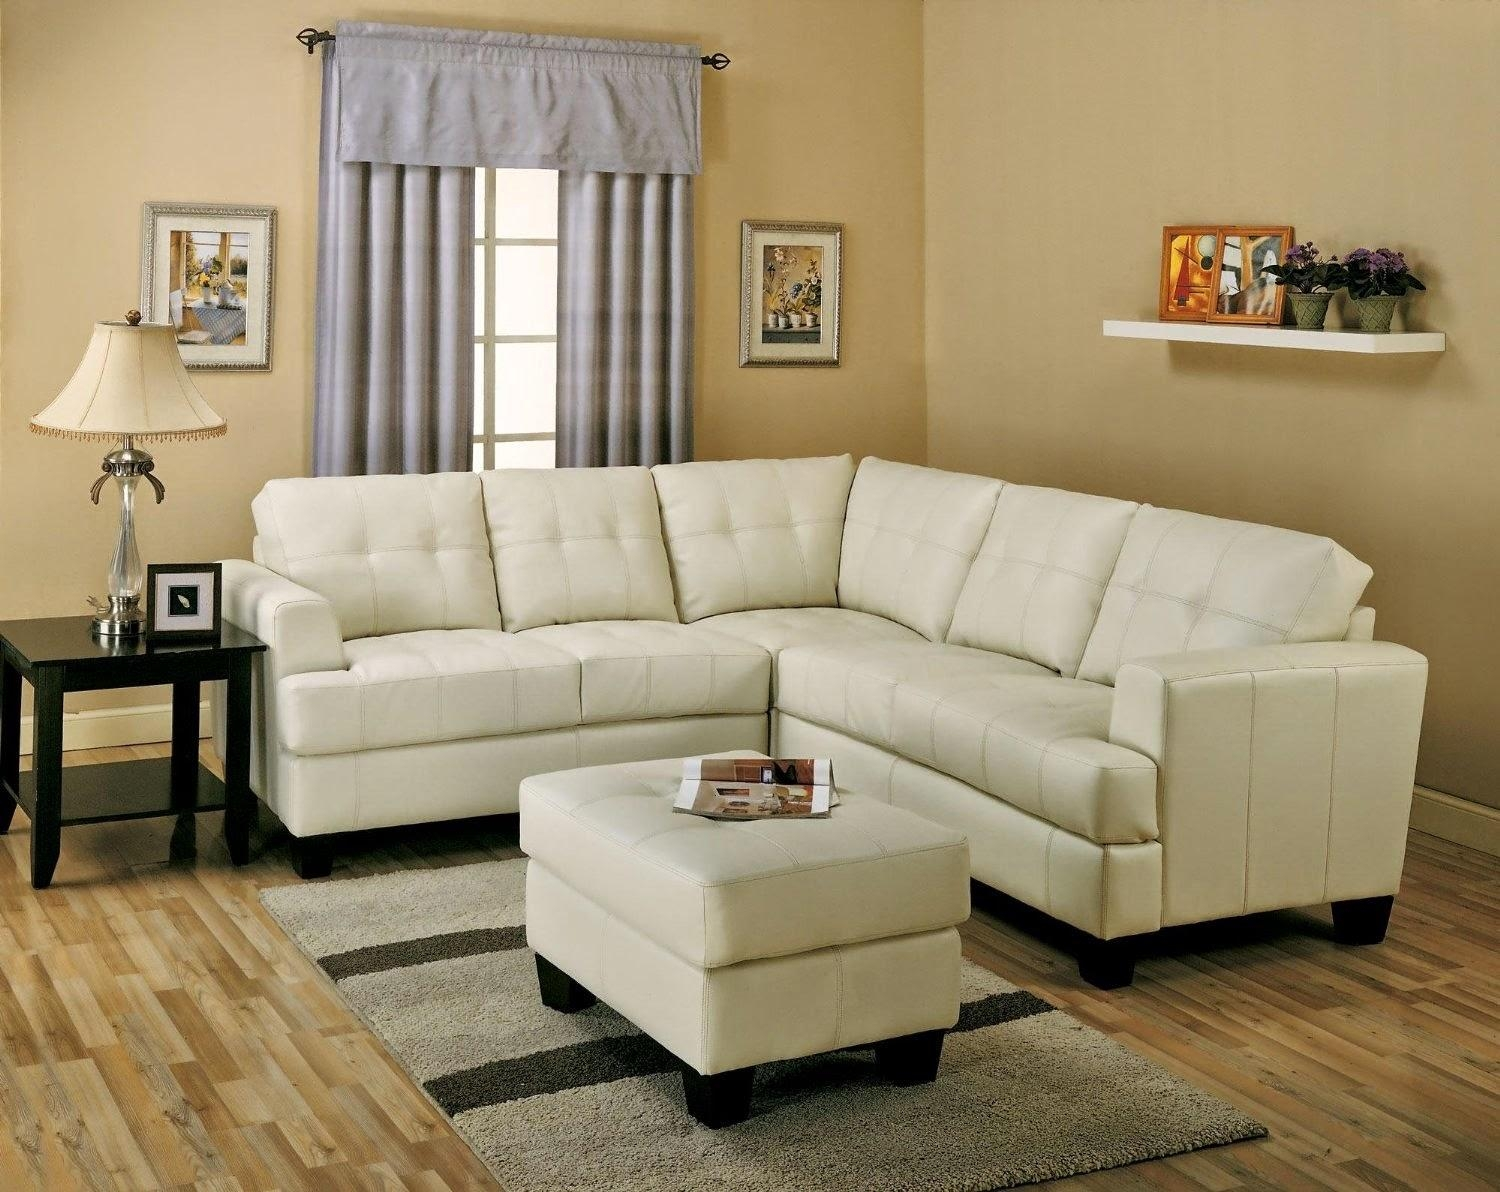 Furniture: Tillary Sofa | West Elm Furniture Quality | West Elm Intended For West Elm Sectional Sofa (View 13 of 20)